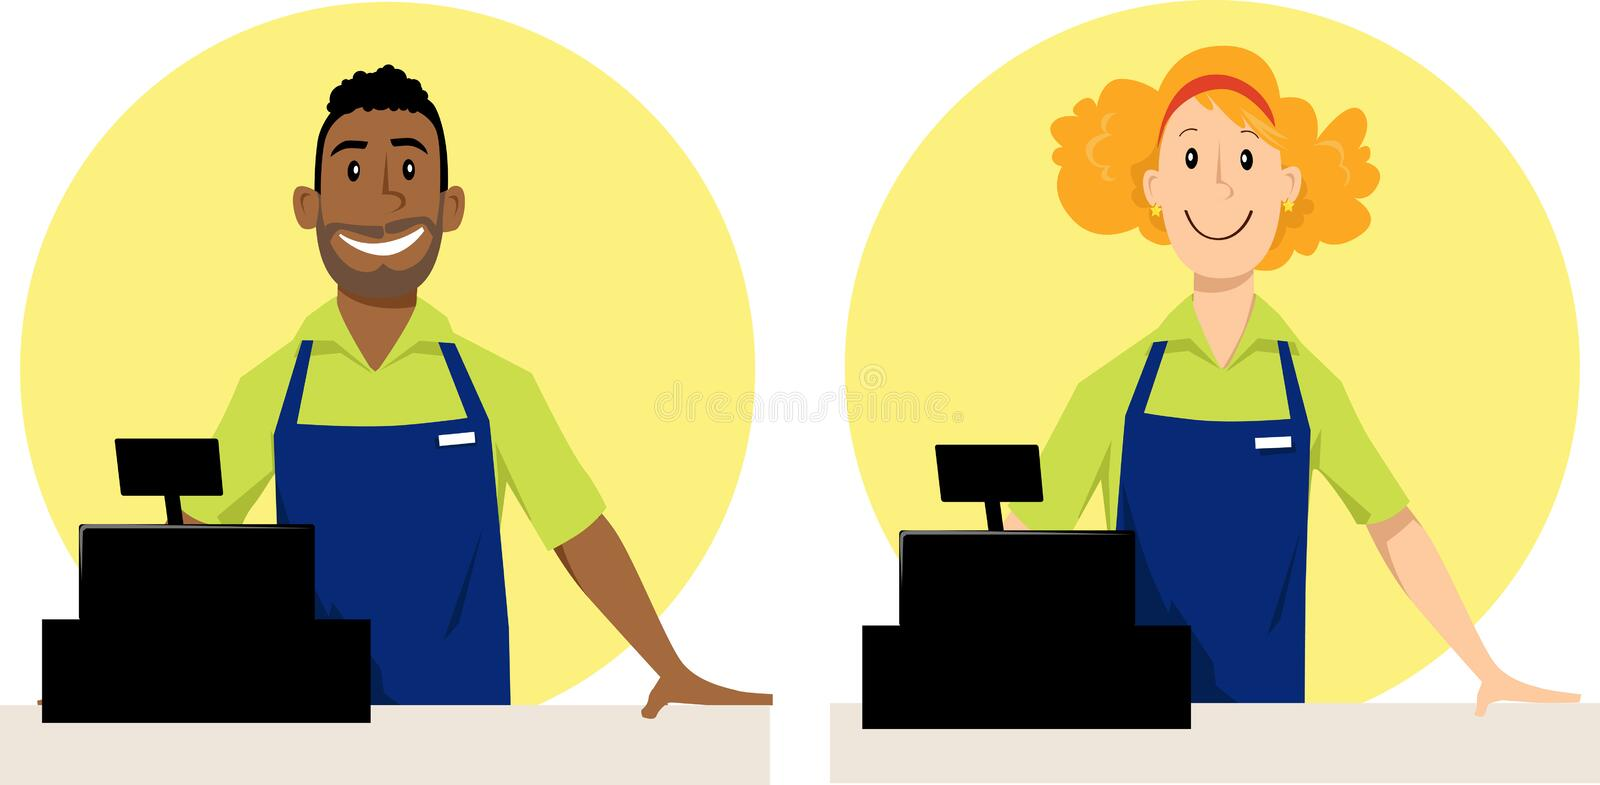 Cashier Cartoons: Grocery Store Cashiers Stock Vector. Illustration Of